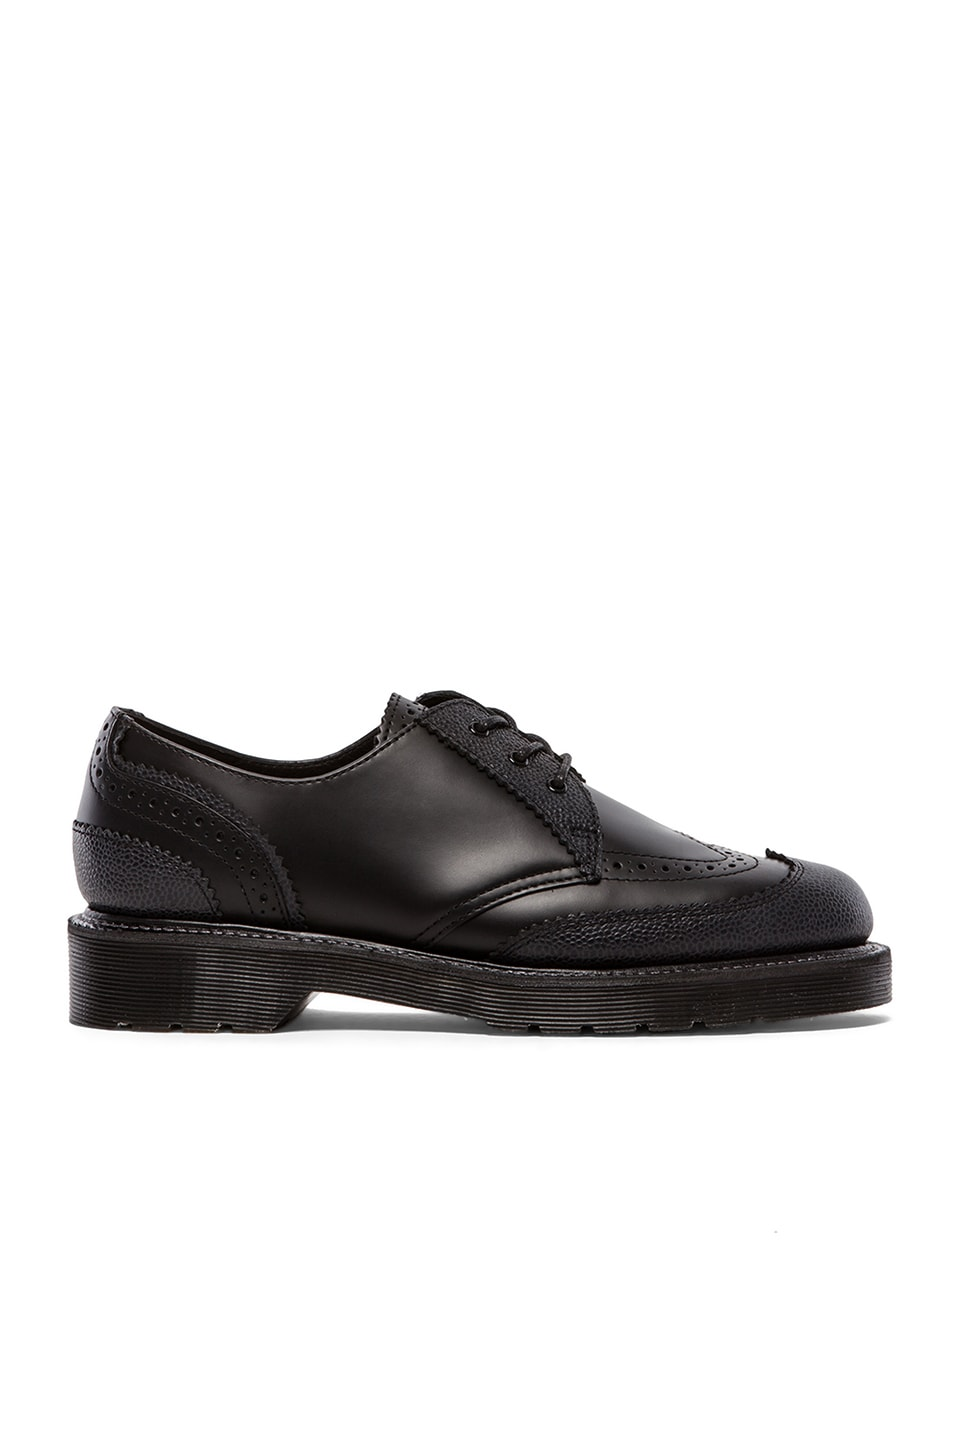 Dr. Martens 3-Eye Kelvin Brogue Shoe in Black & Black